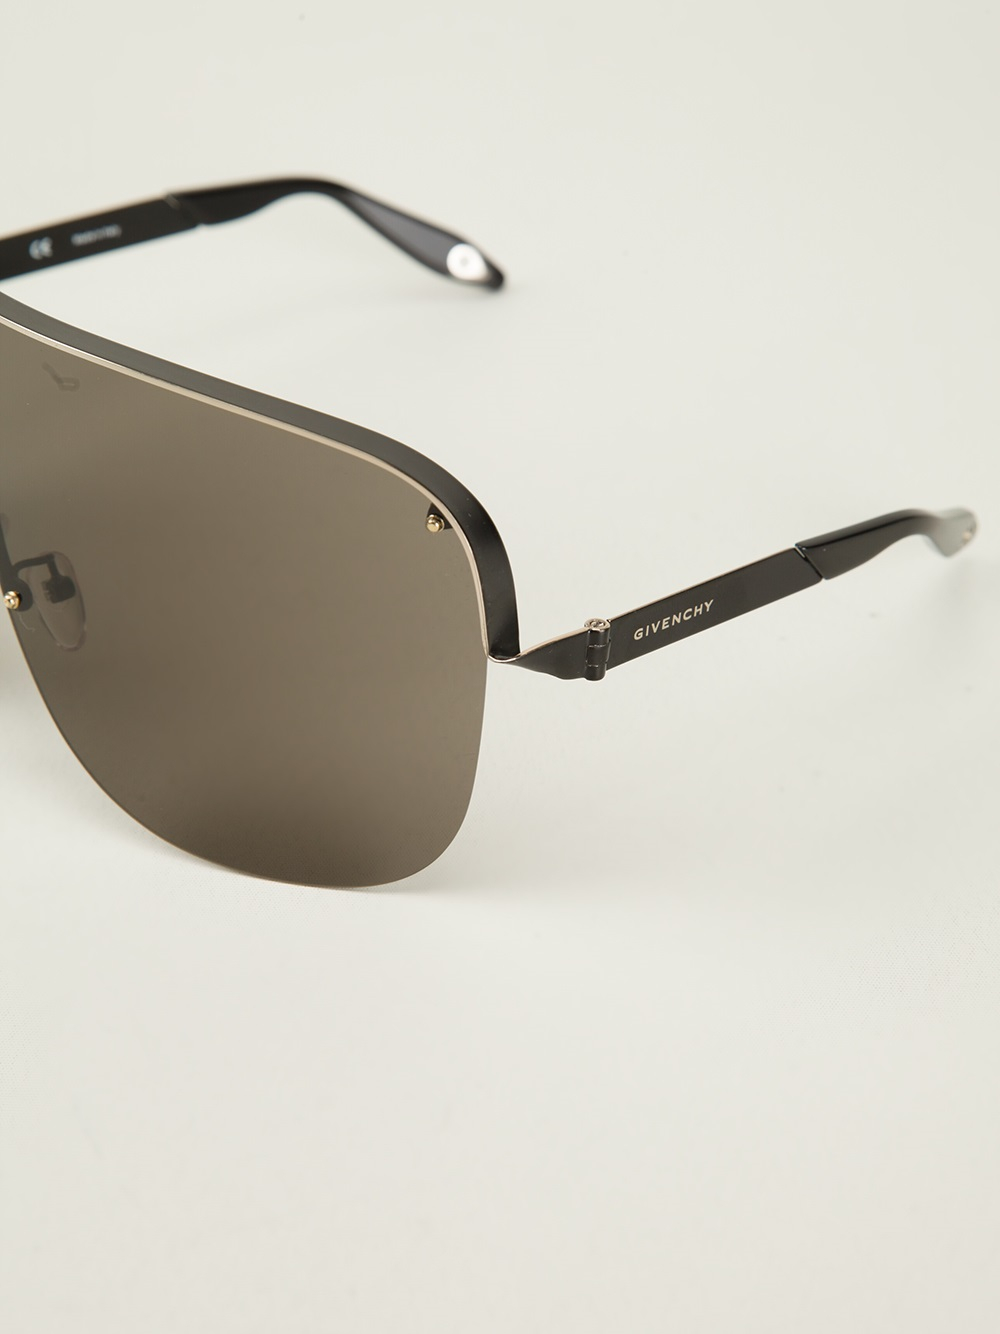 a6b413290b Givenchy Visor Sunglasses in Black - Lyst